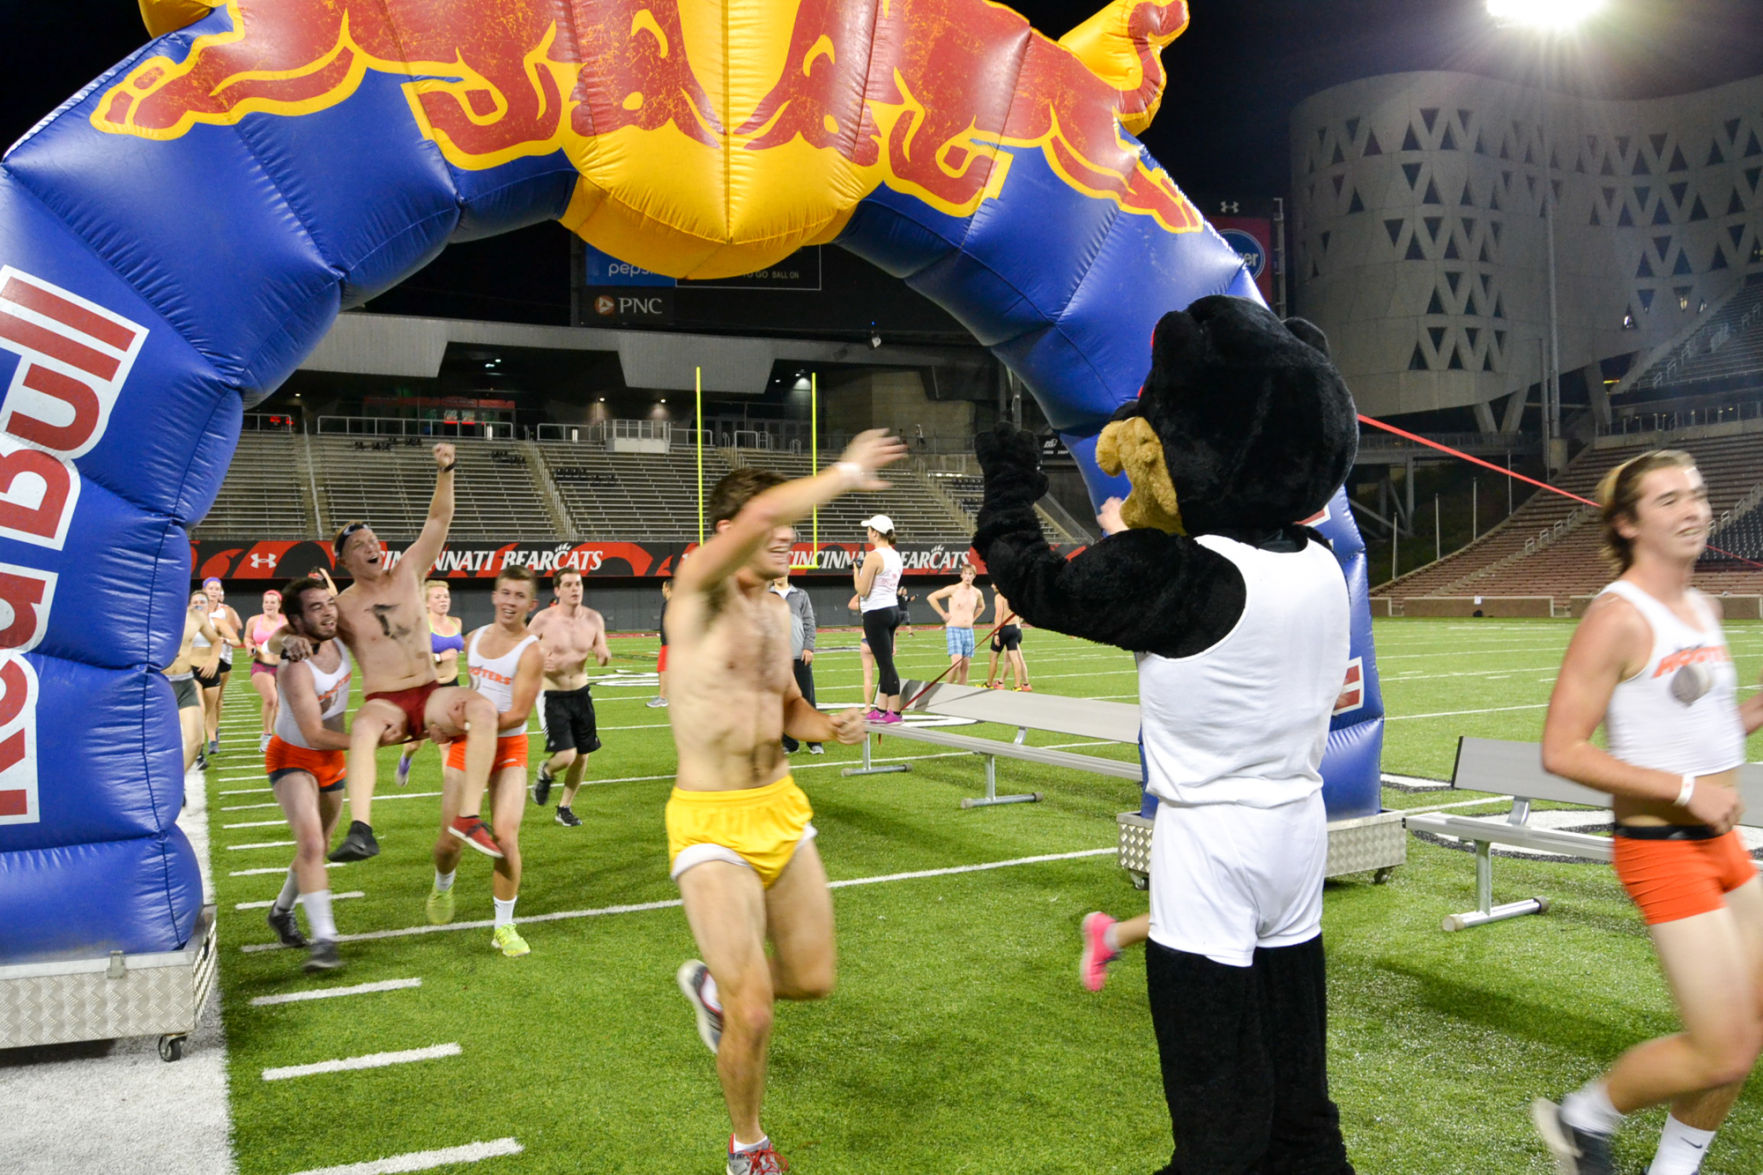 College mile naked